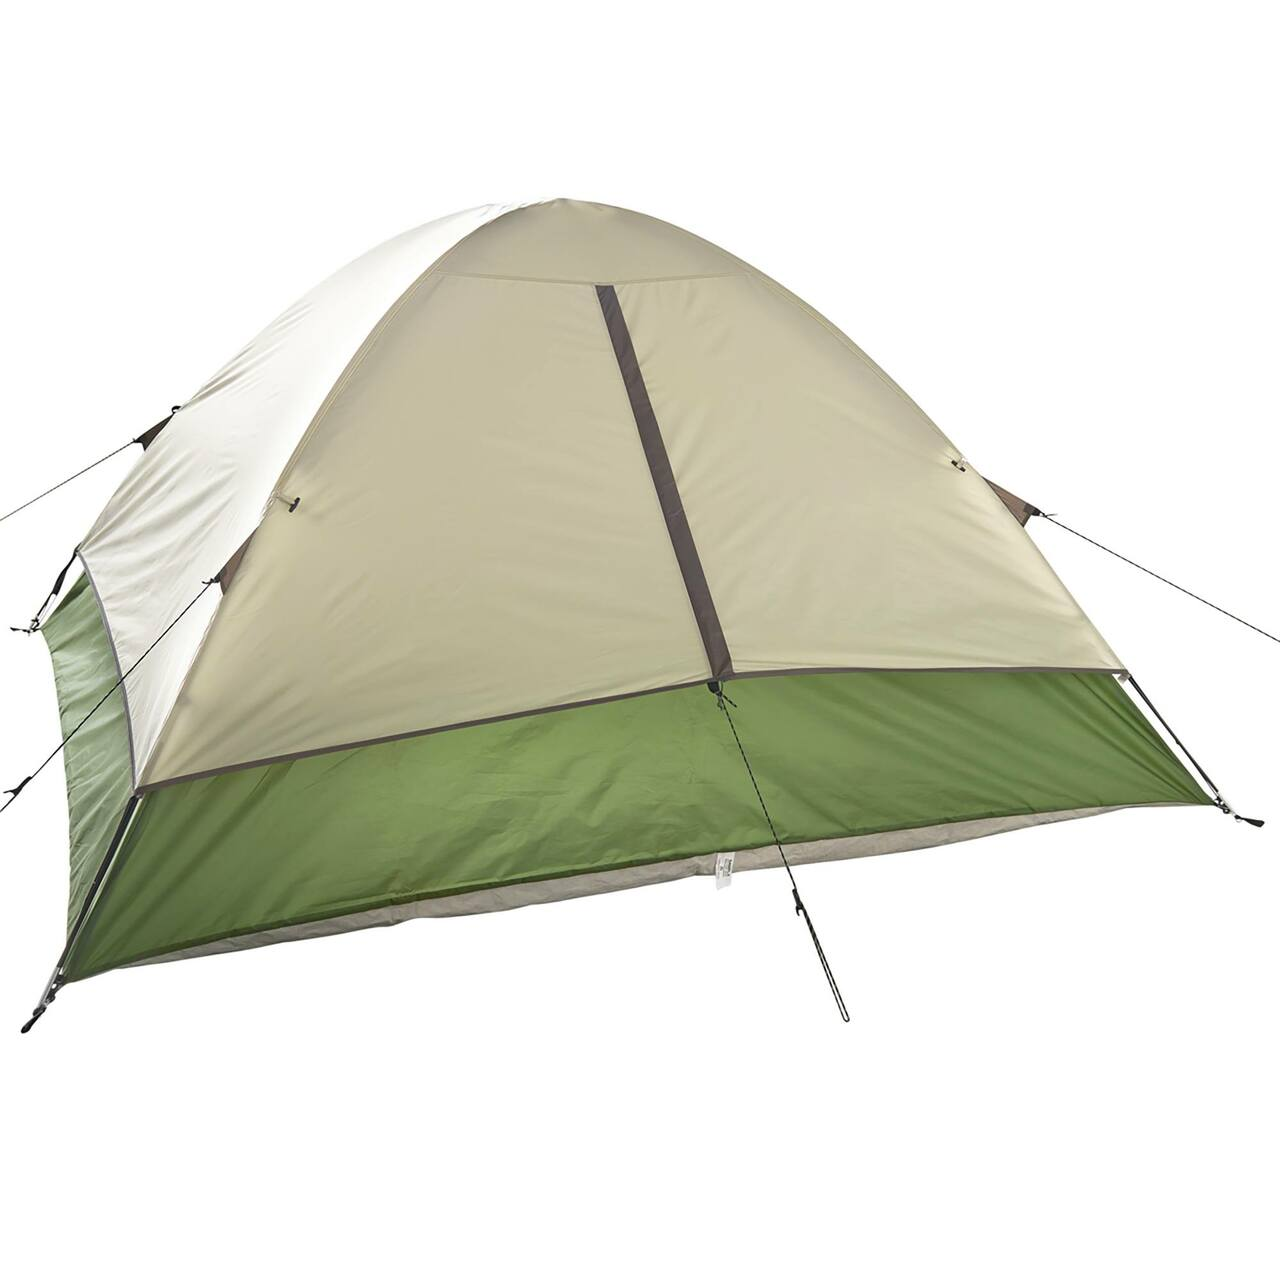 Wenzel Jack Pine 4 Person Dome Tent, green/white, rear view, with window